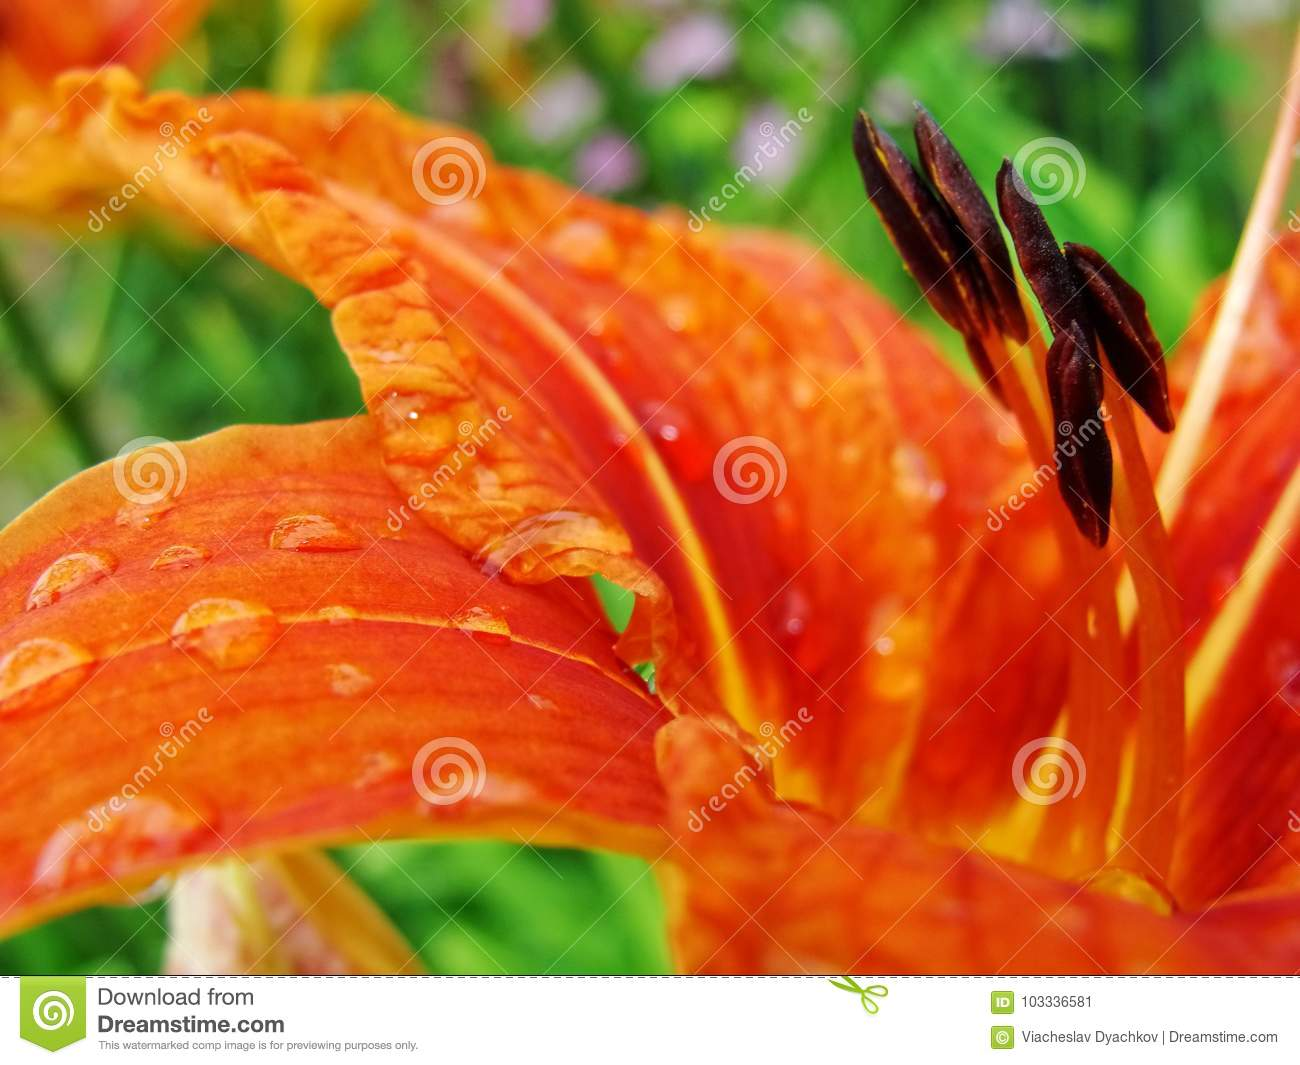 Macro of red orange flower with pollen on anther stock image download macro of red orange flower with pollen on anther stock image image mightylinksfo